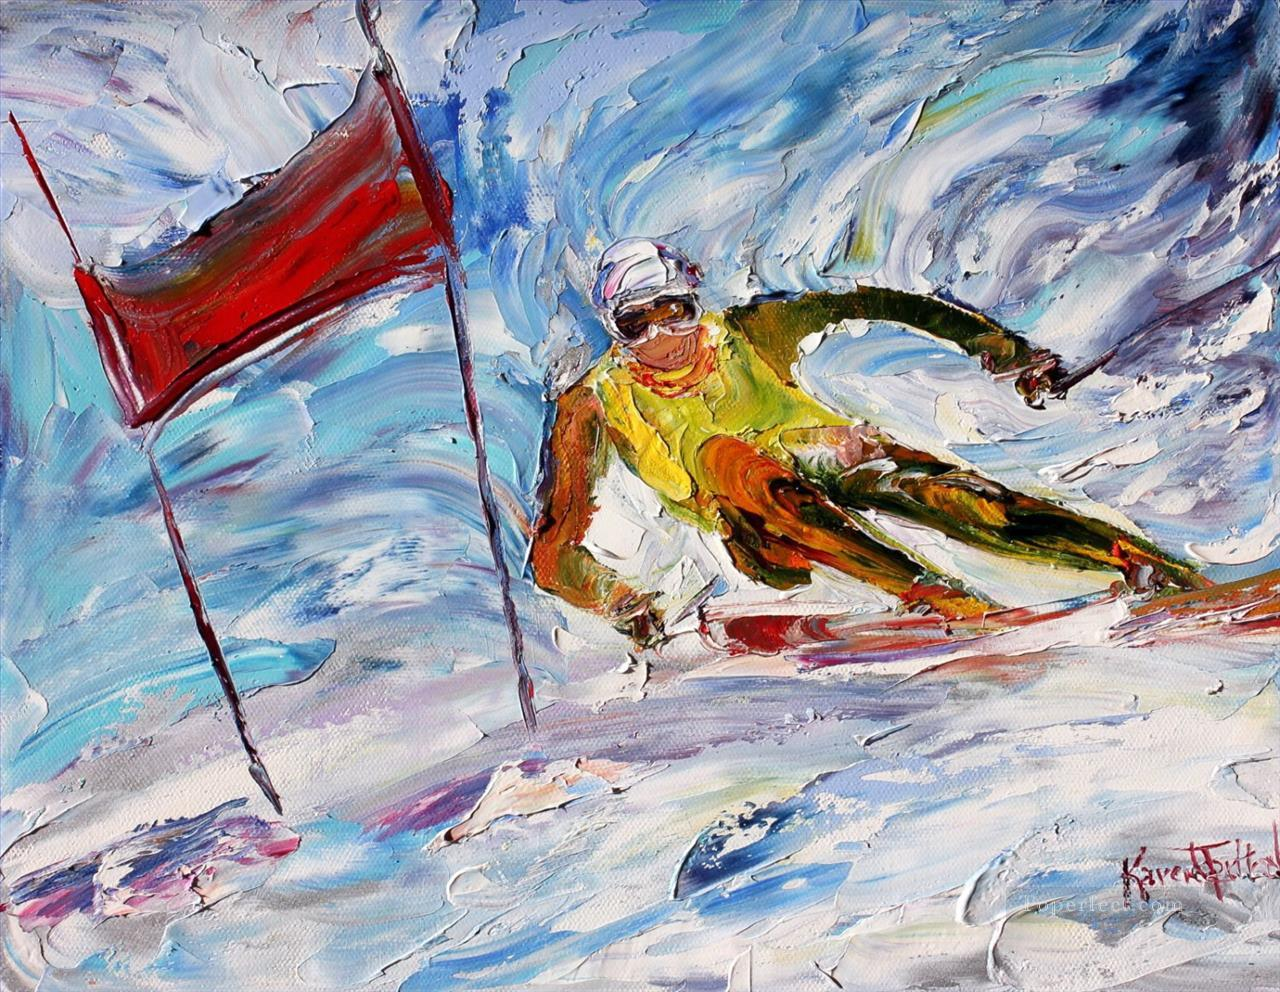 Downhill Ski Racer impressionists Oil Paintings